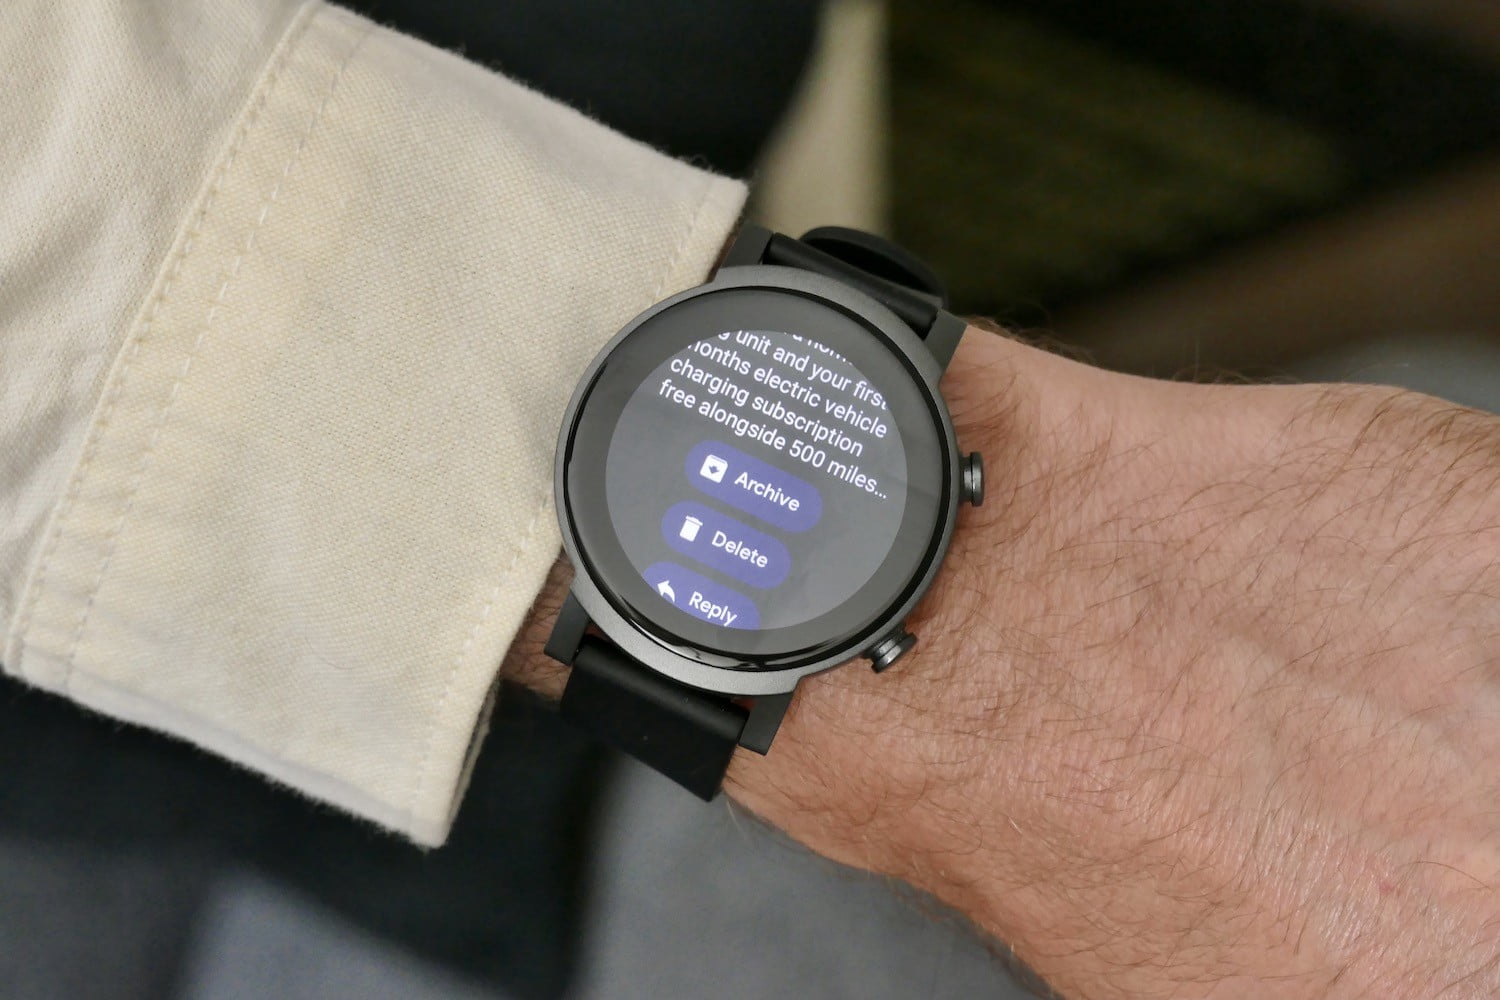 Notification responses on the TicWatch E3